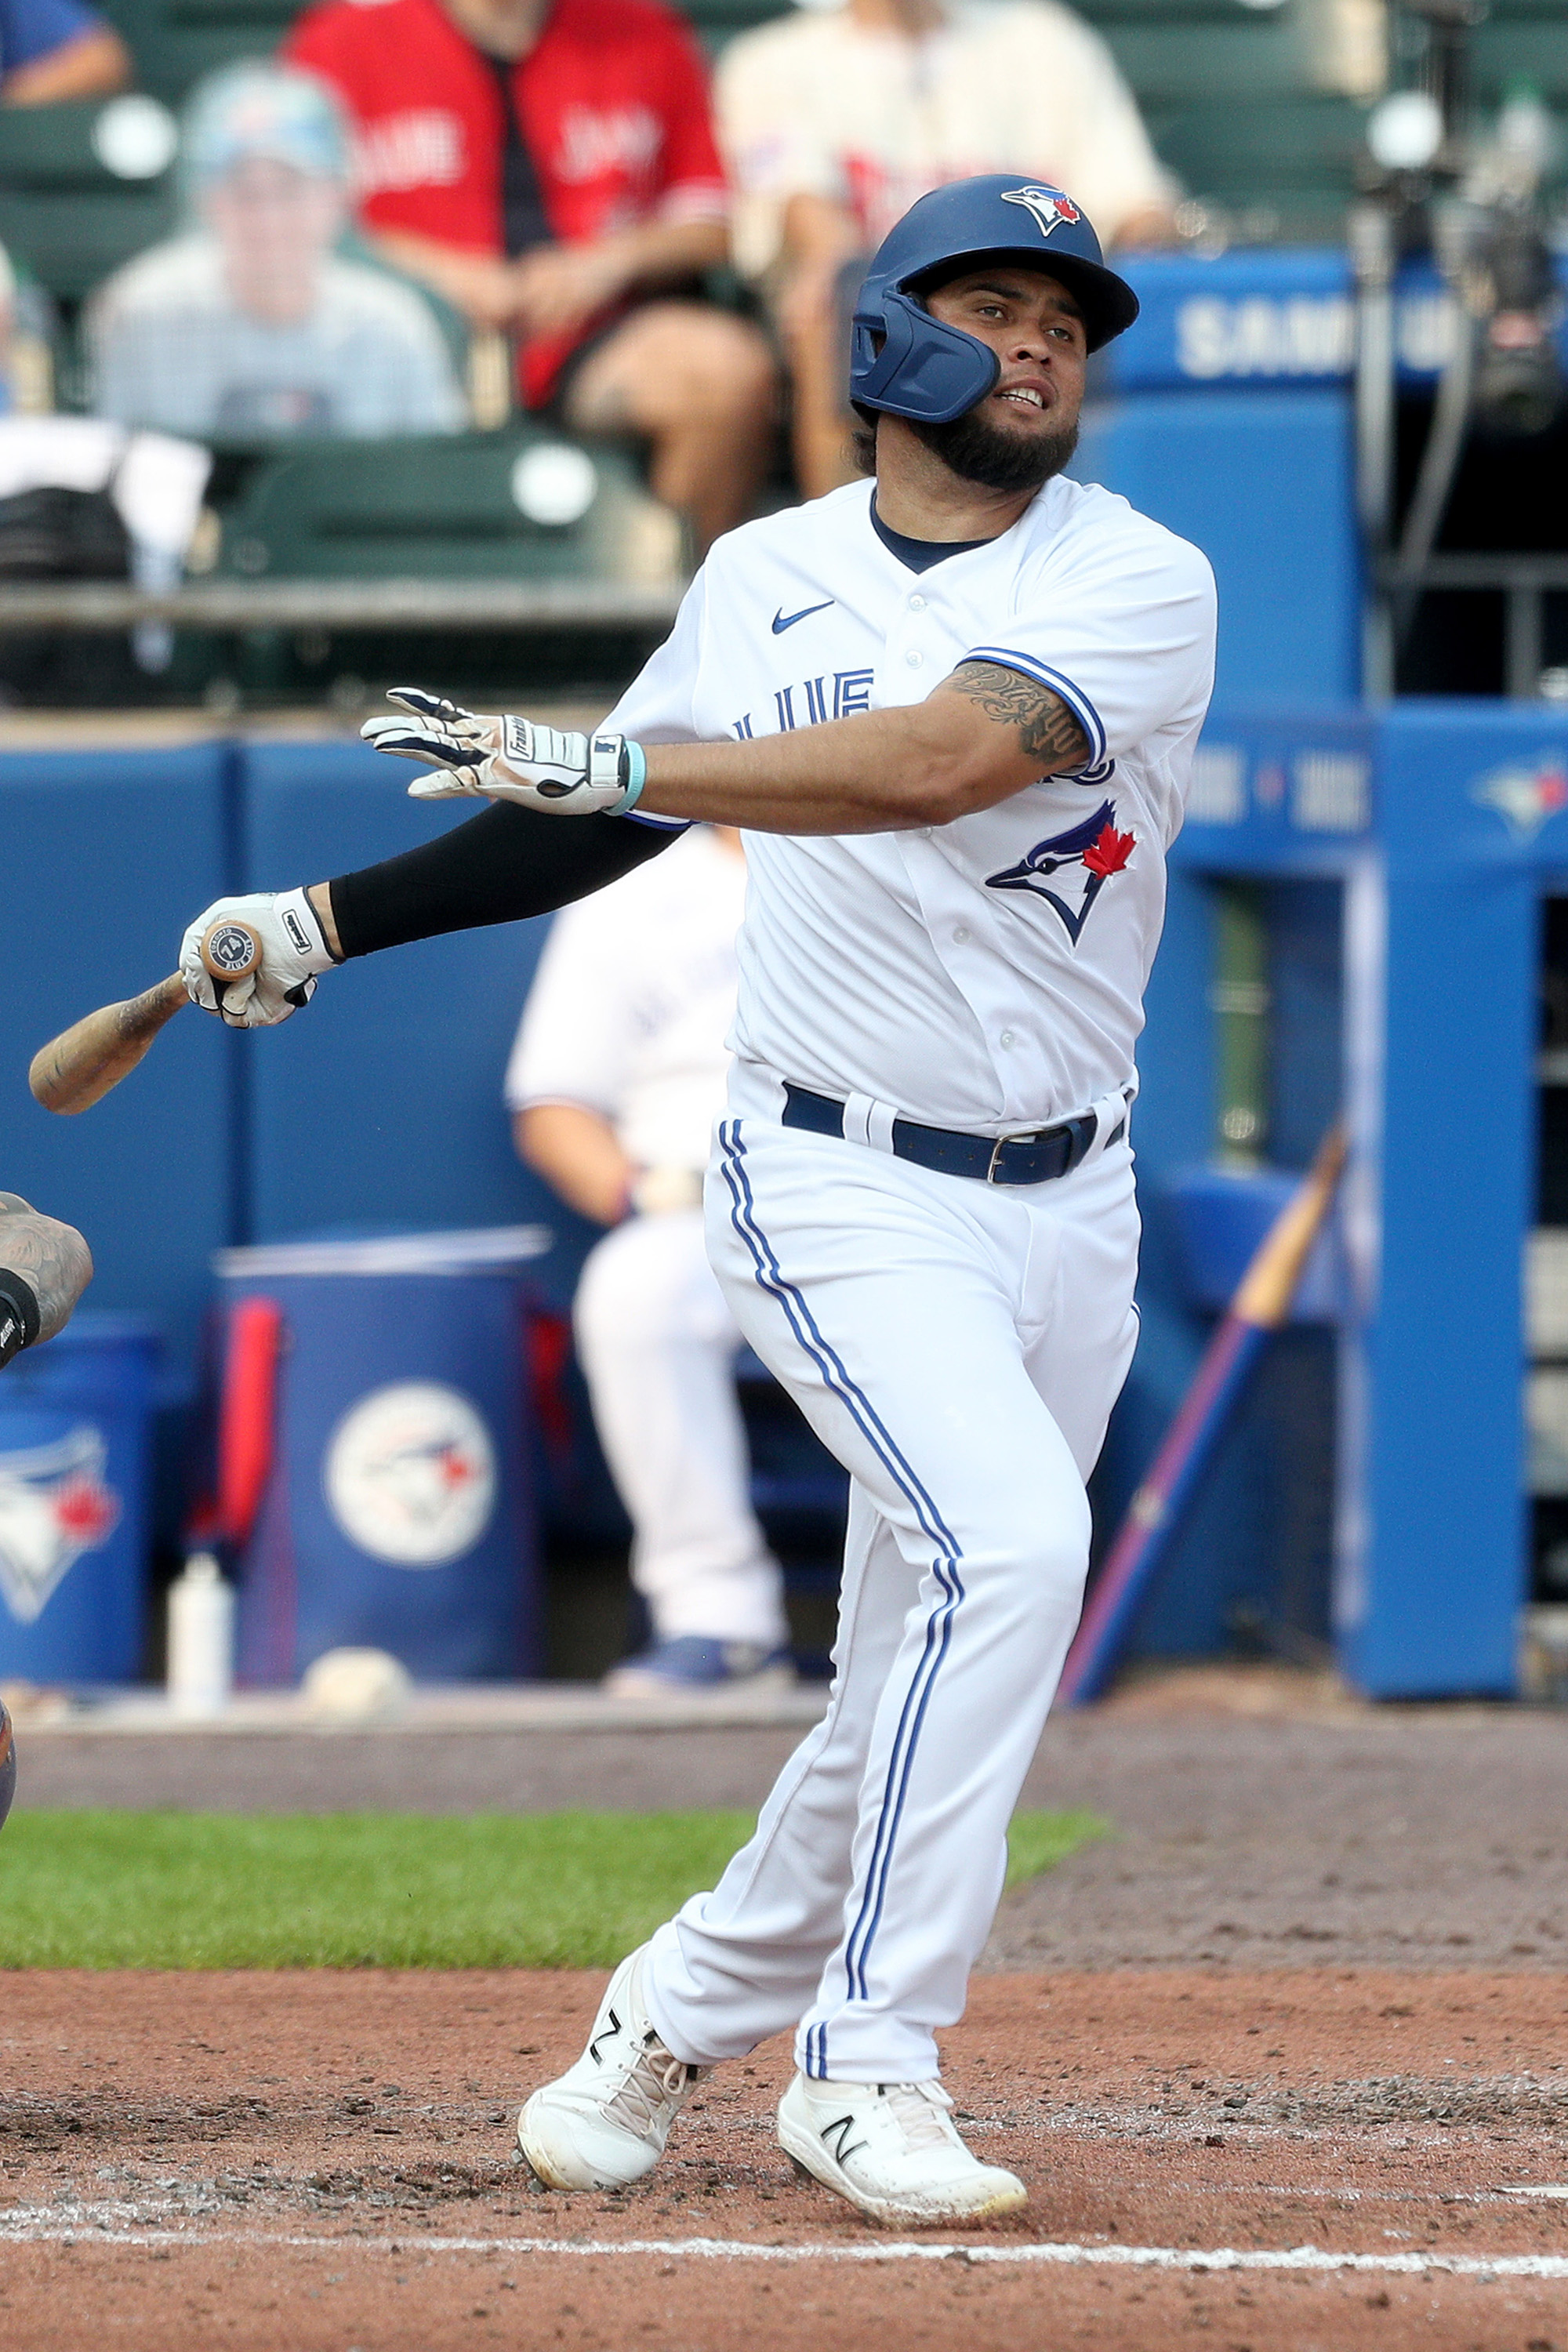 Breyvic Valera #74 of the Toronto Blue Jays reacts after striking out during the sixth inning in game two of a doubleheader against the Texas Rangers at Sahlen Field on July 18, 2021 in Buffalo, New York.